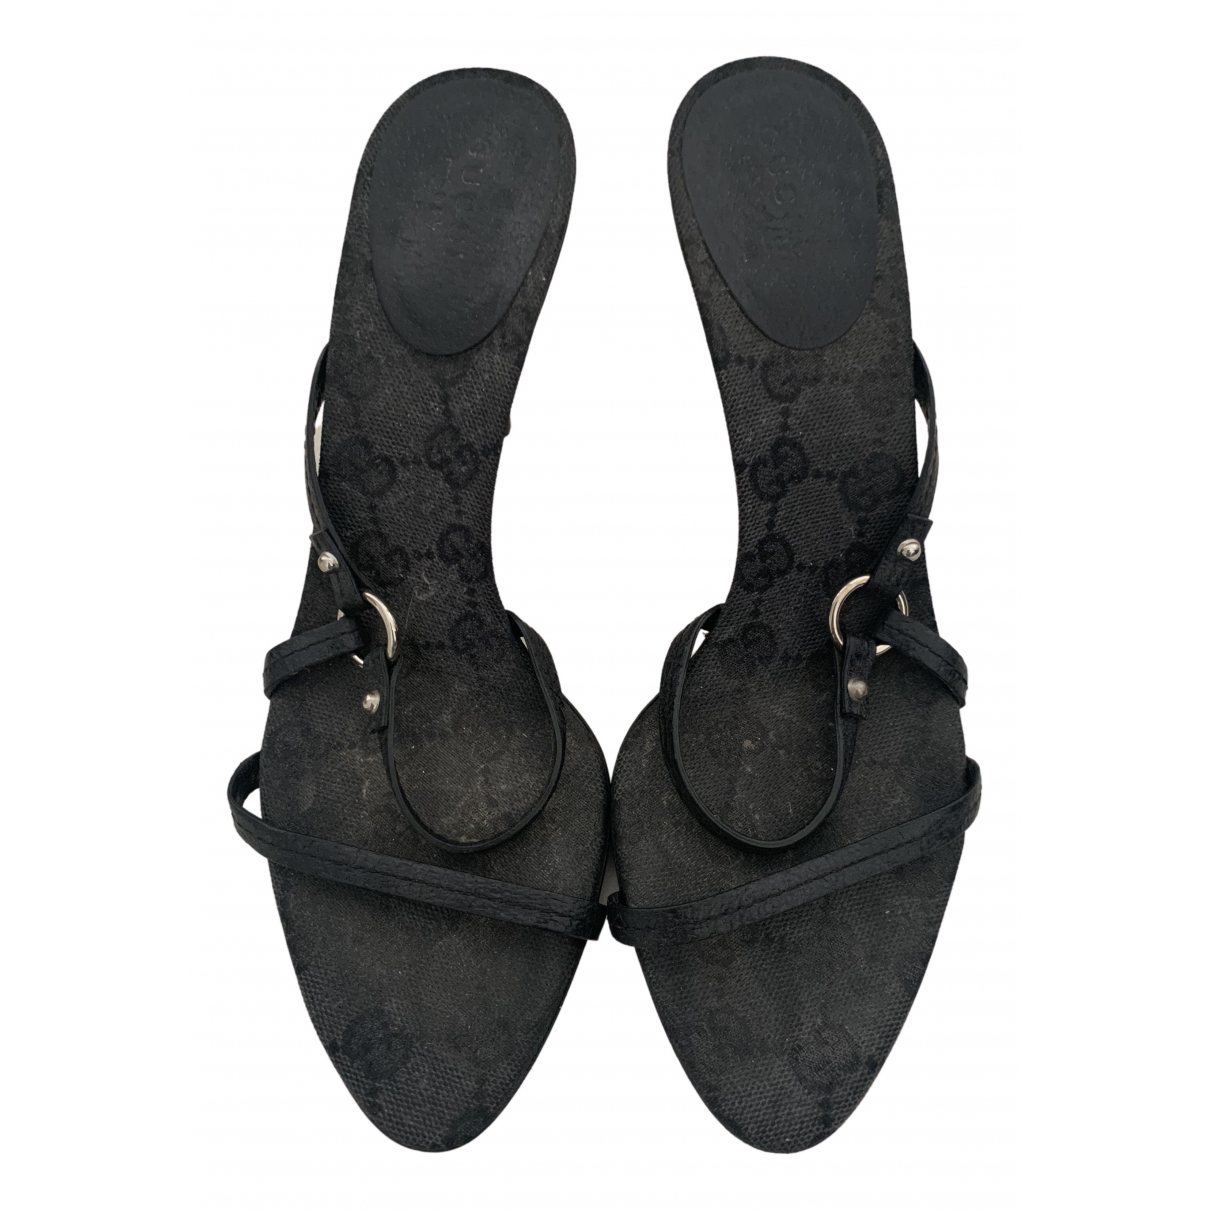 Gucci N Black Leather Sandals for Women 37 EU